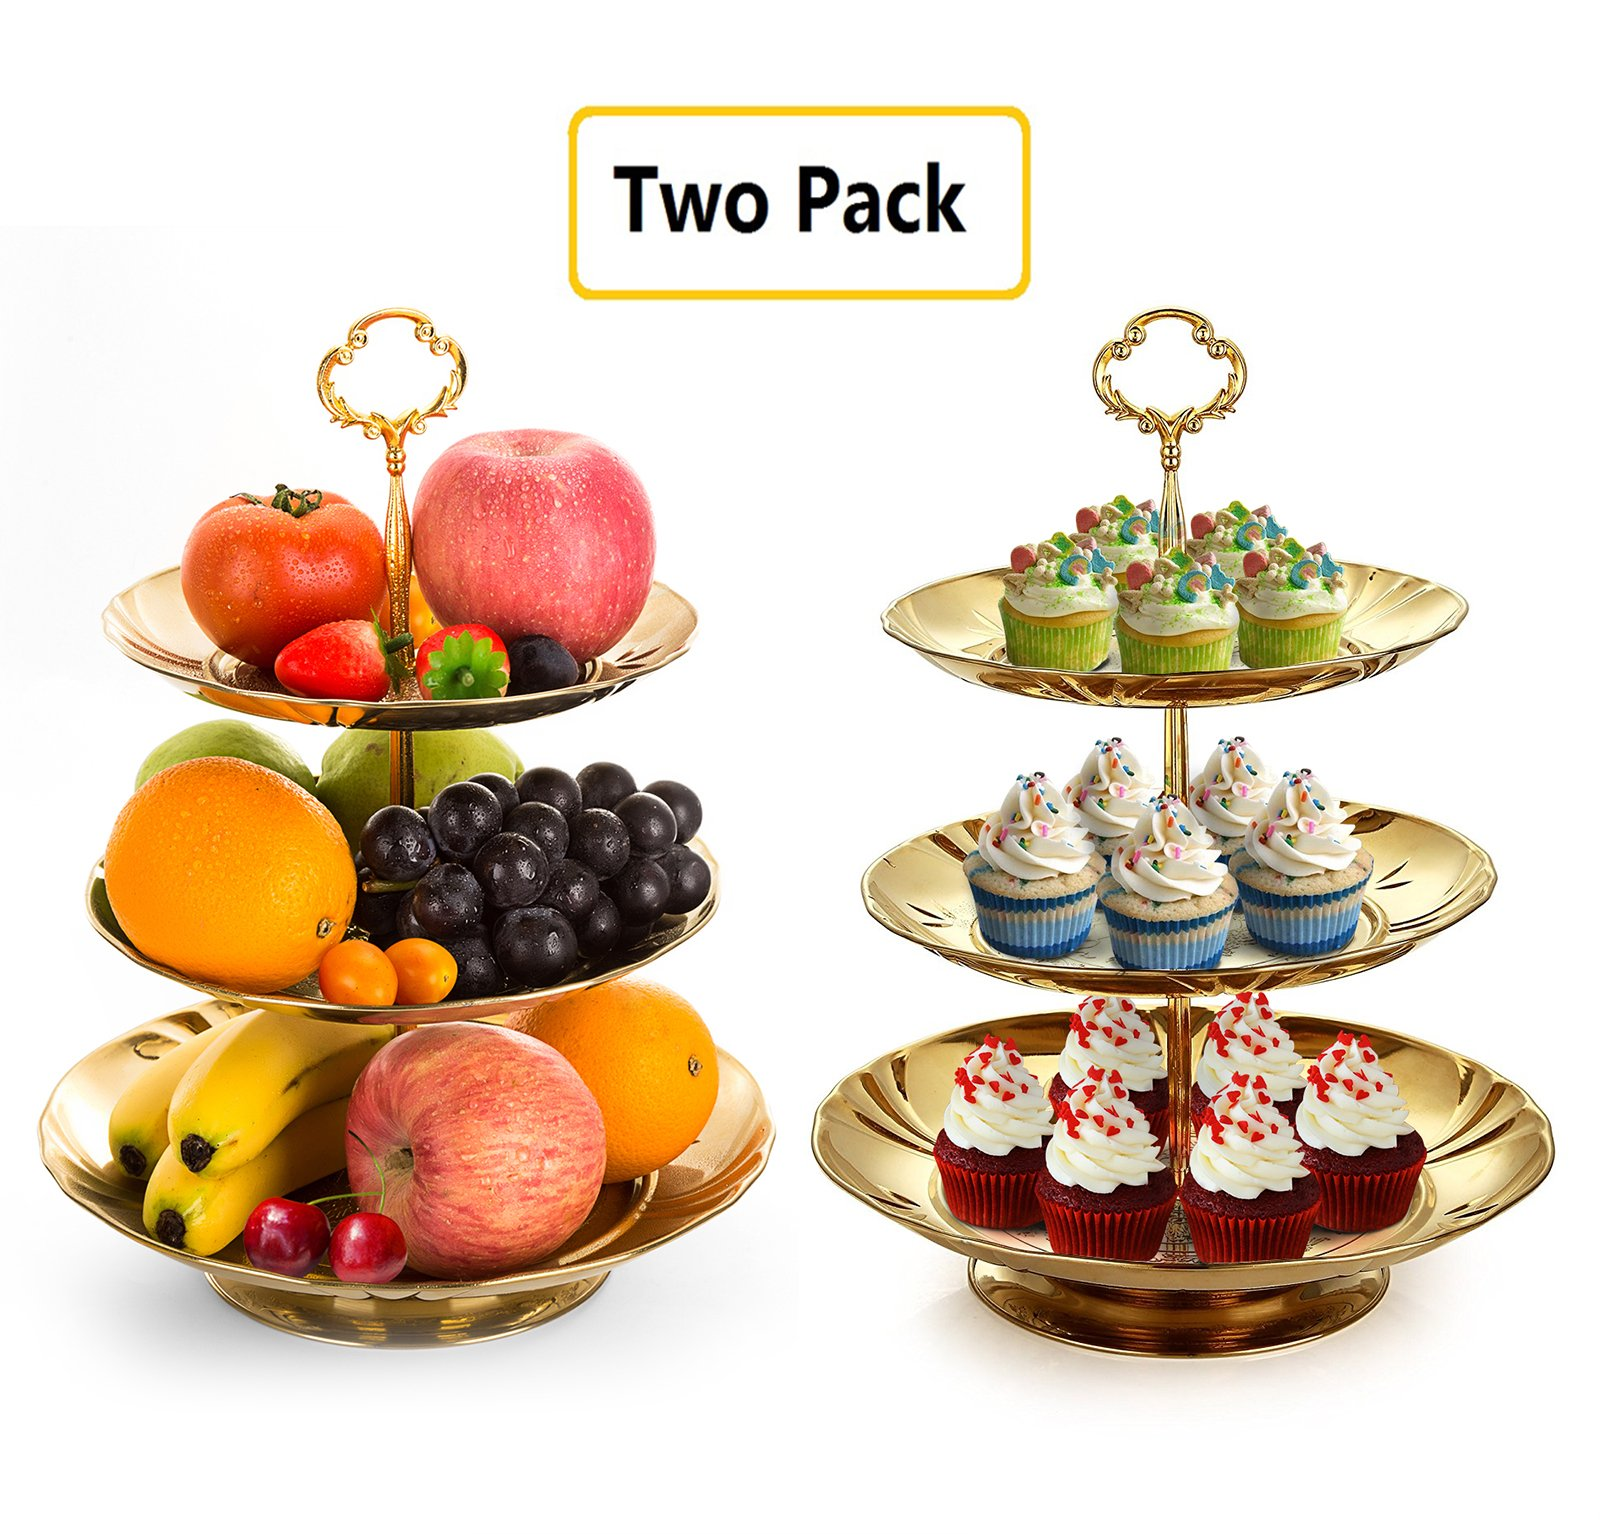 Two Set of Three Tier Cake Stand and Fruit Plate by Imillet -Stainless Steel Stand of Golden for Cakes Desserts Fruits Candy Buffet Stand for Wedding &Home&Party Serving Platter (2 pack)